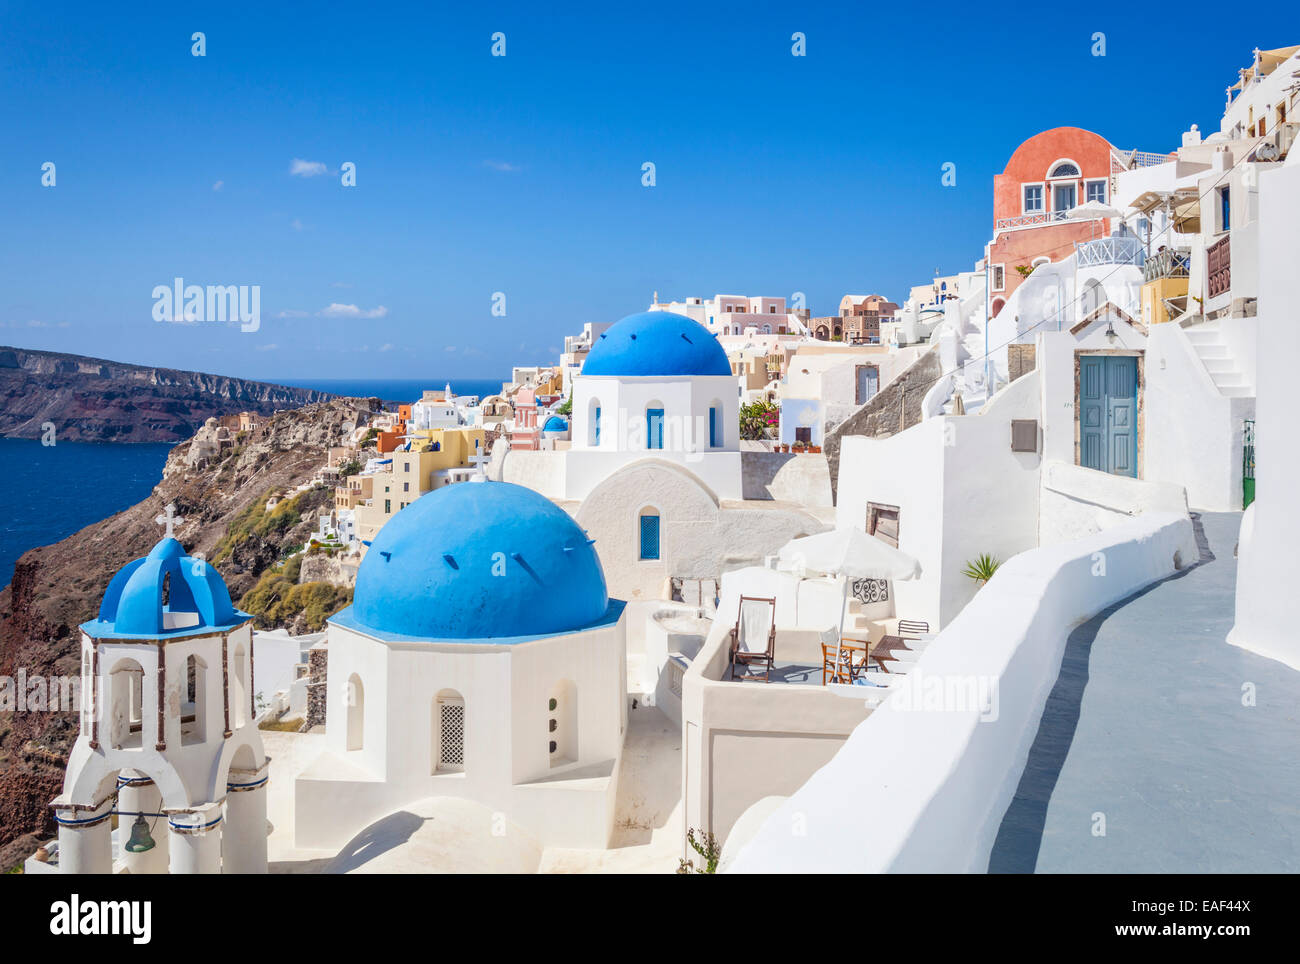 White houses and blue domes in the village of Oia, Santorini, Thira,  Cyclades Islands, Greek Islands, Greece, EU, Europe